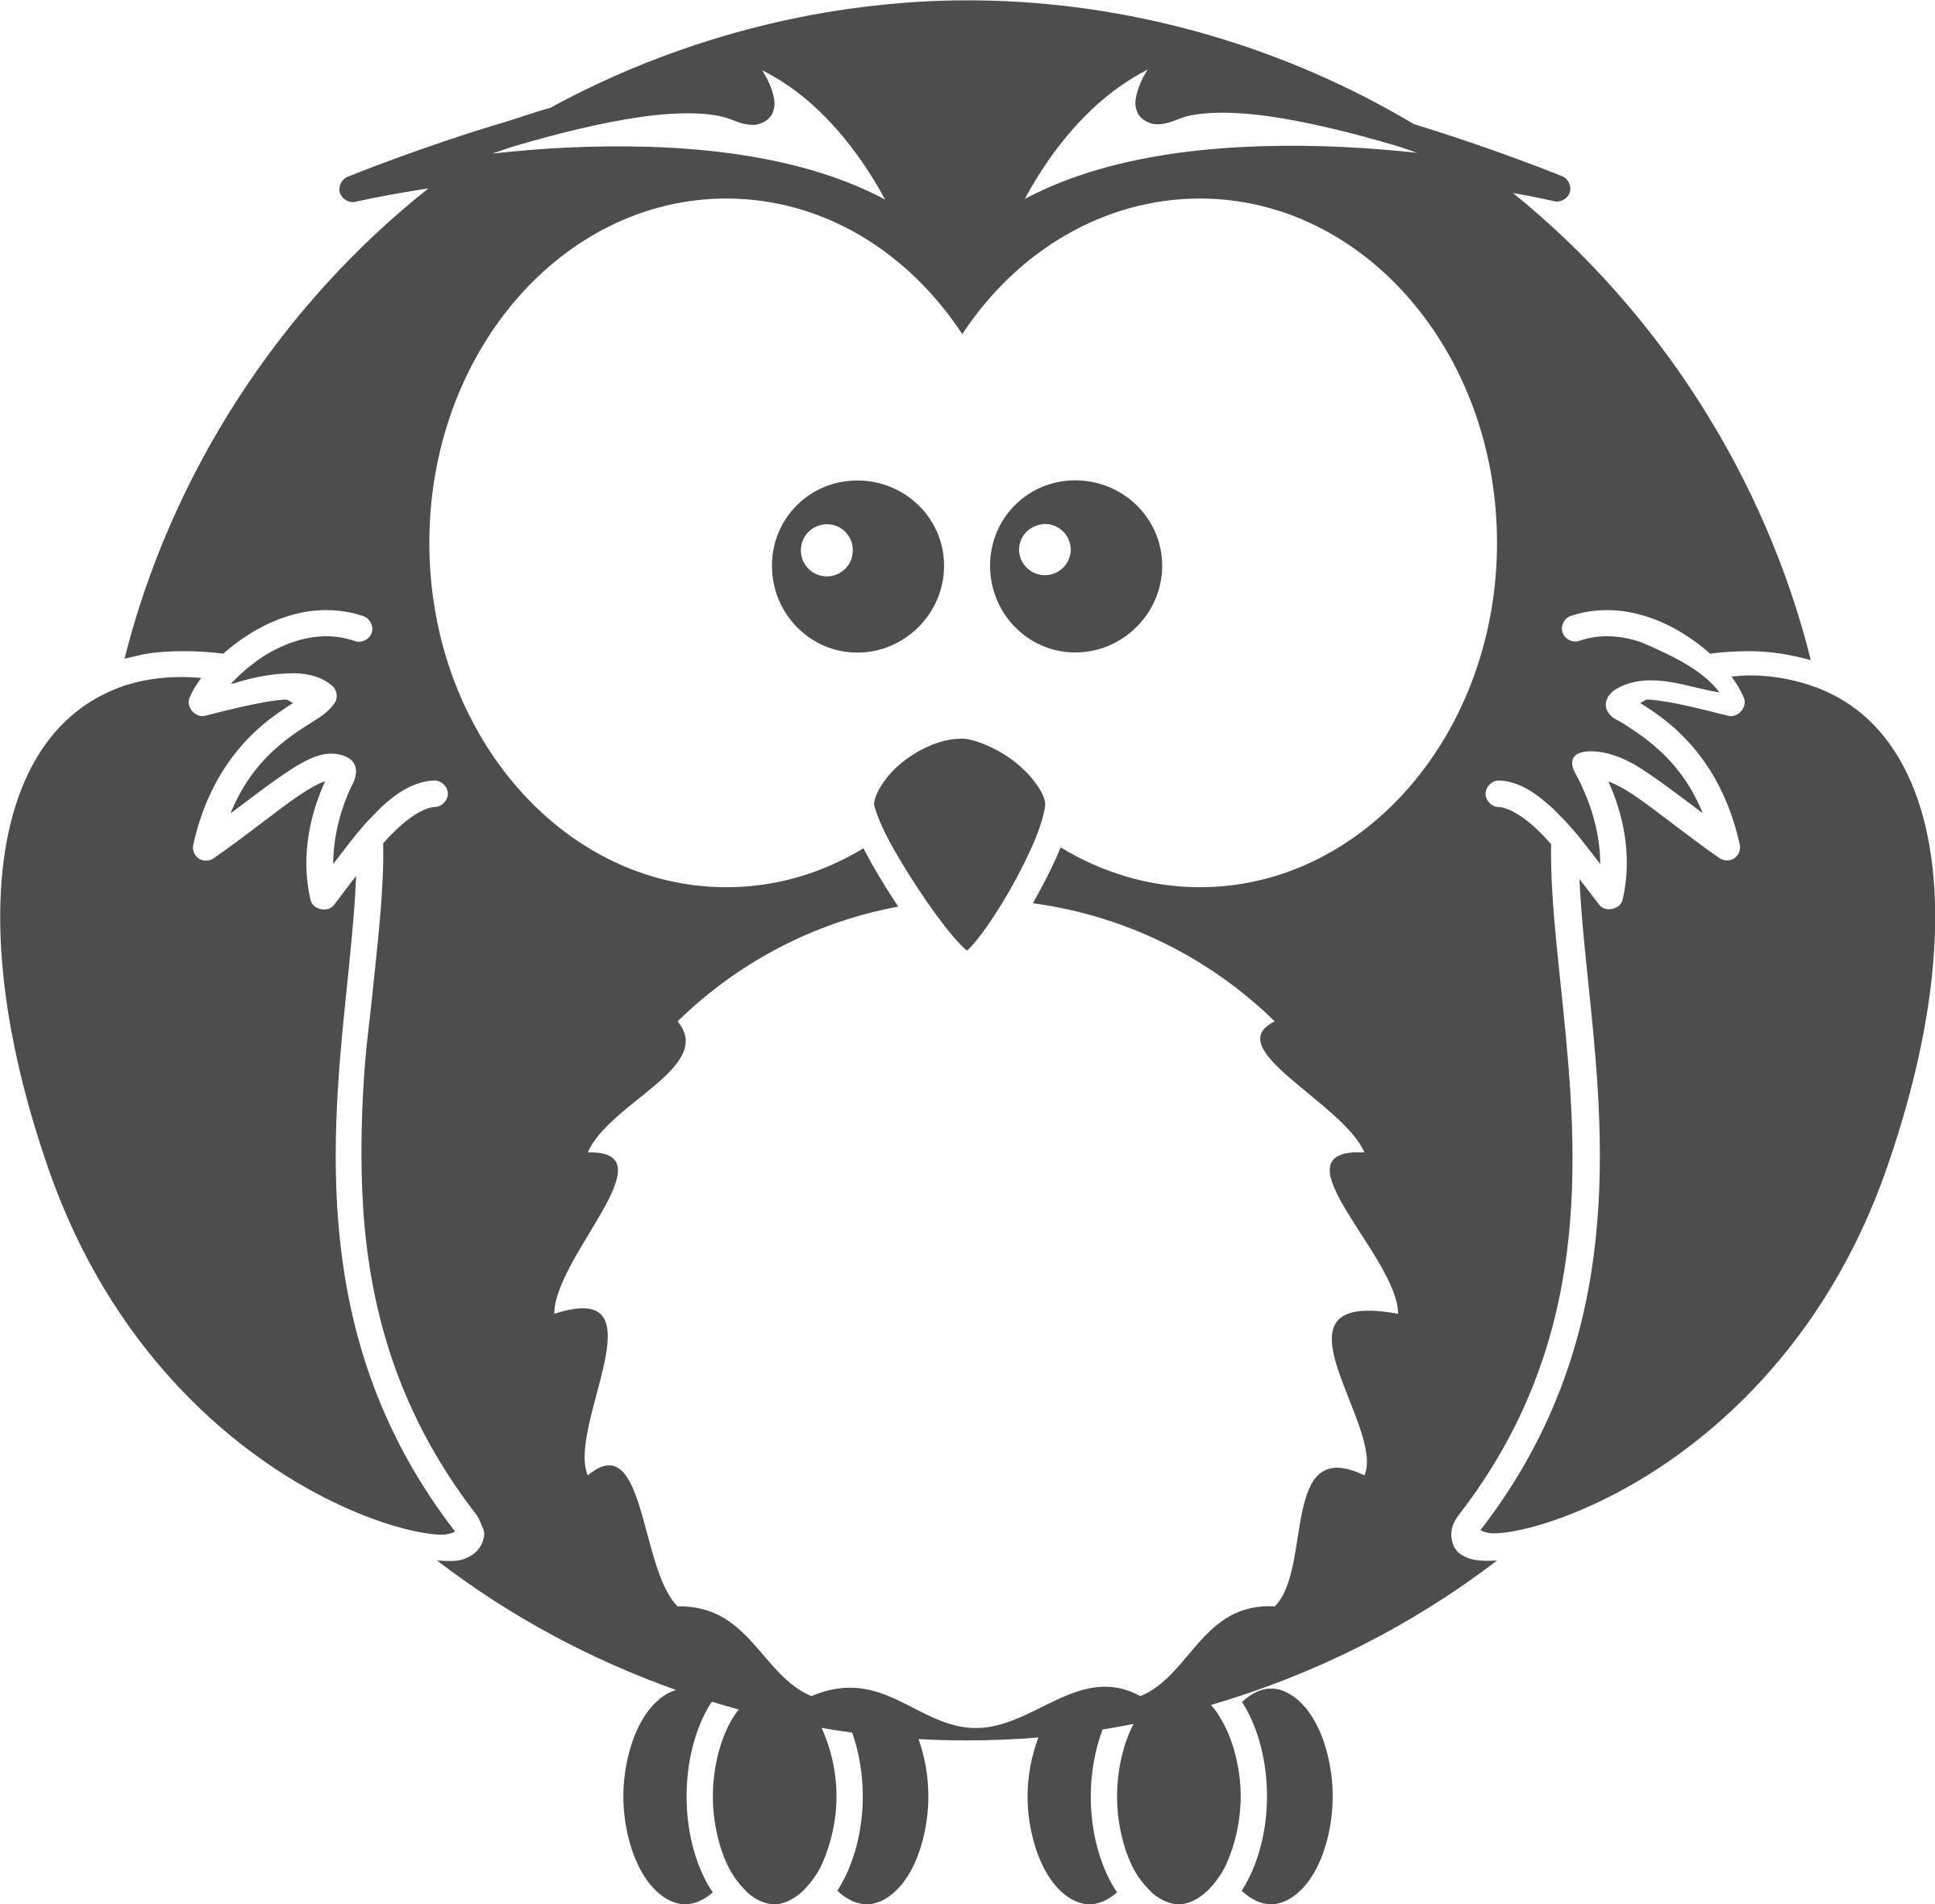 Cartoon Icons Png Free Cartoon Owl Png Black And White Clipart Full Size Clipart 5217362 Pinclipart